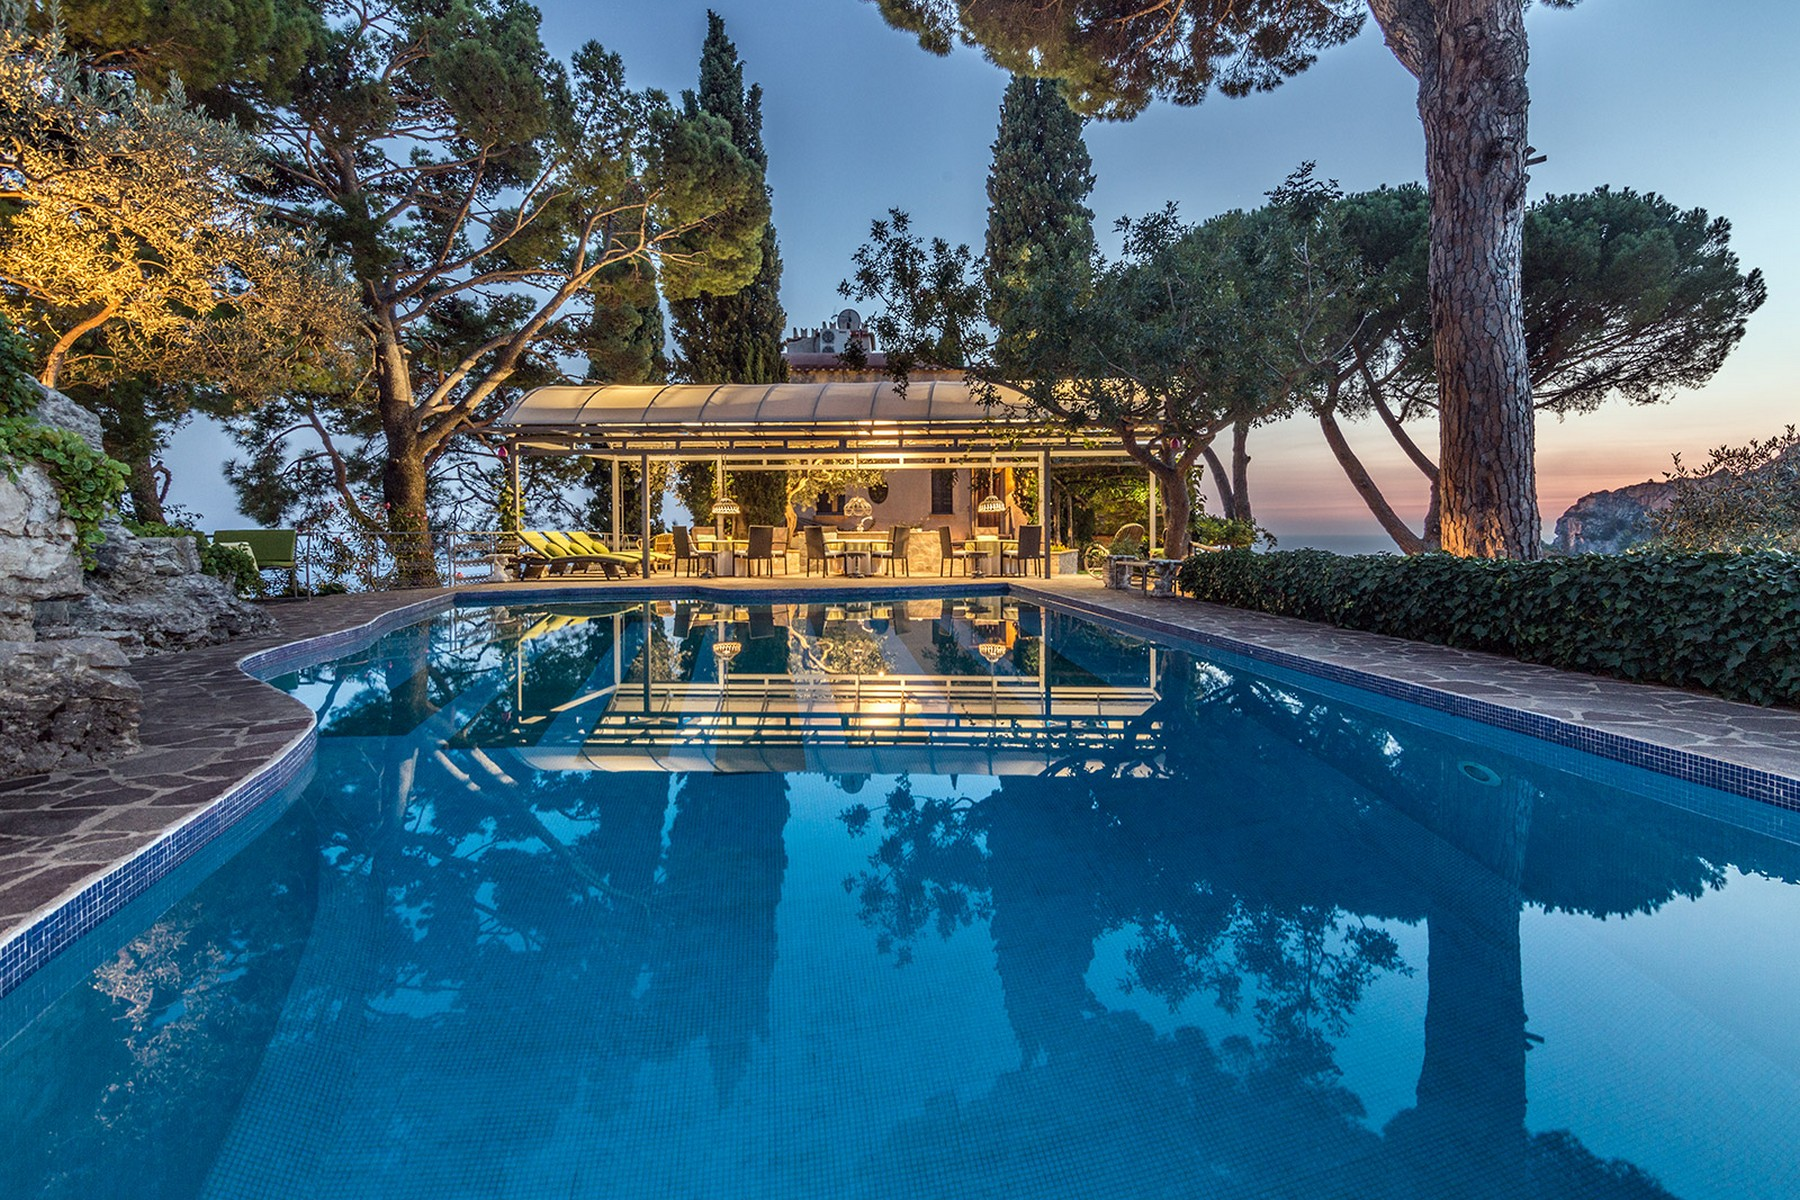 独户住宅 为 销售 在 Torre di Civita, stunning property by the Amalfi Coast Ravello, 萨勒诺, 意大利